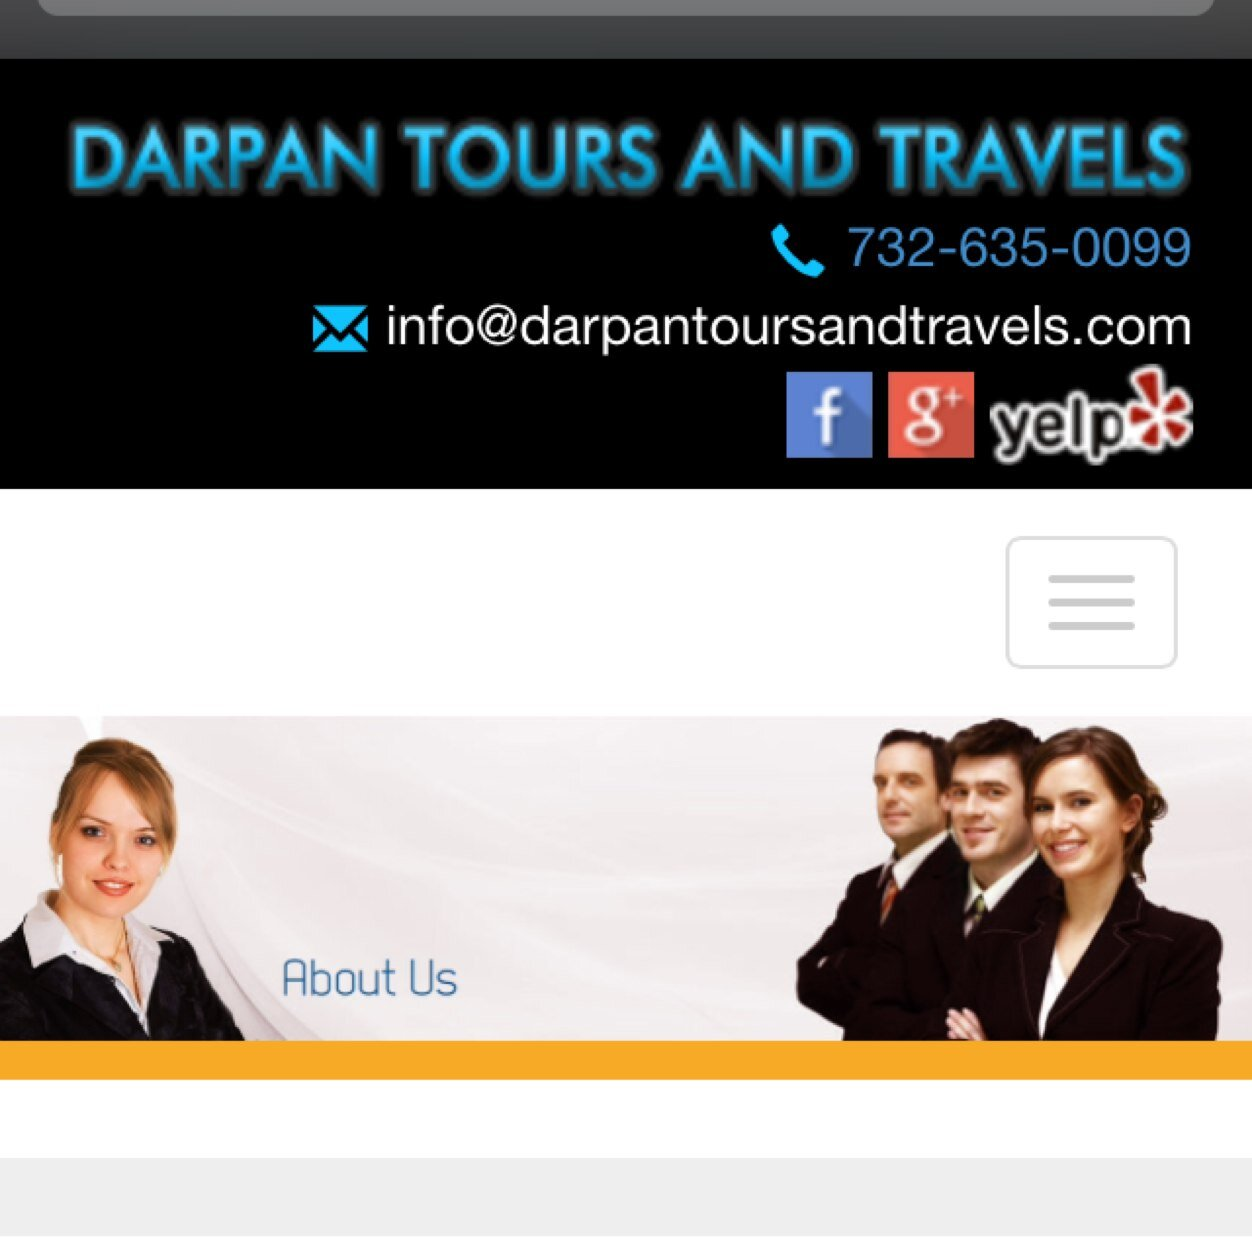 Darpan Tours And Travels